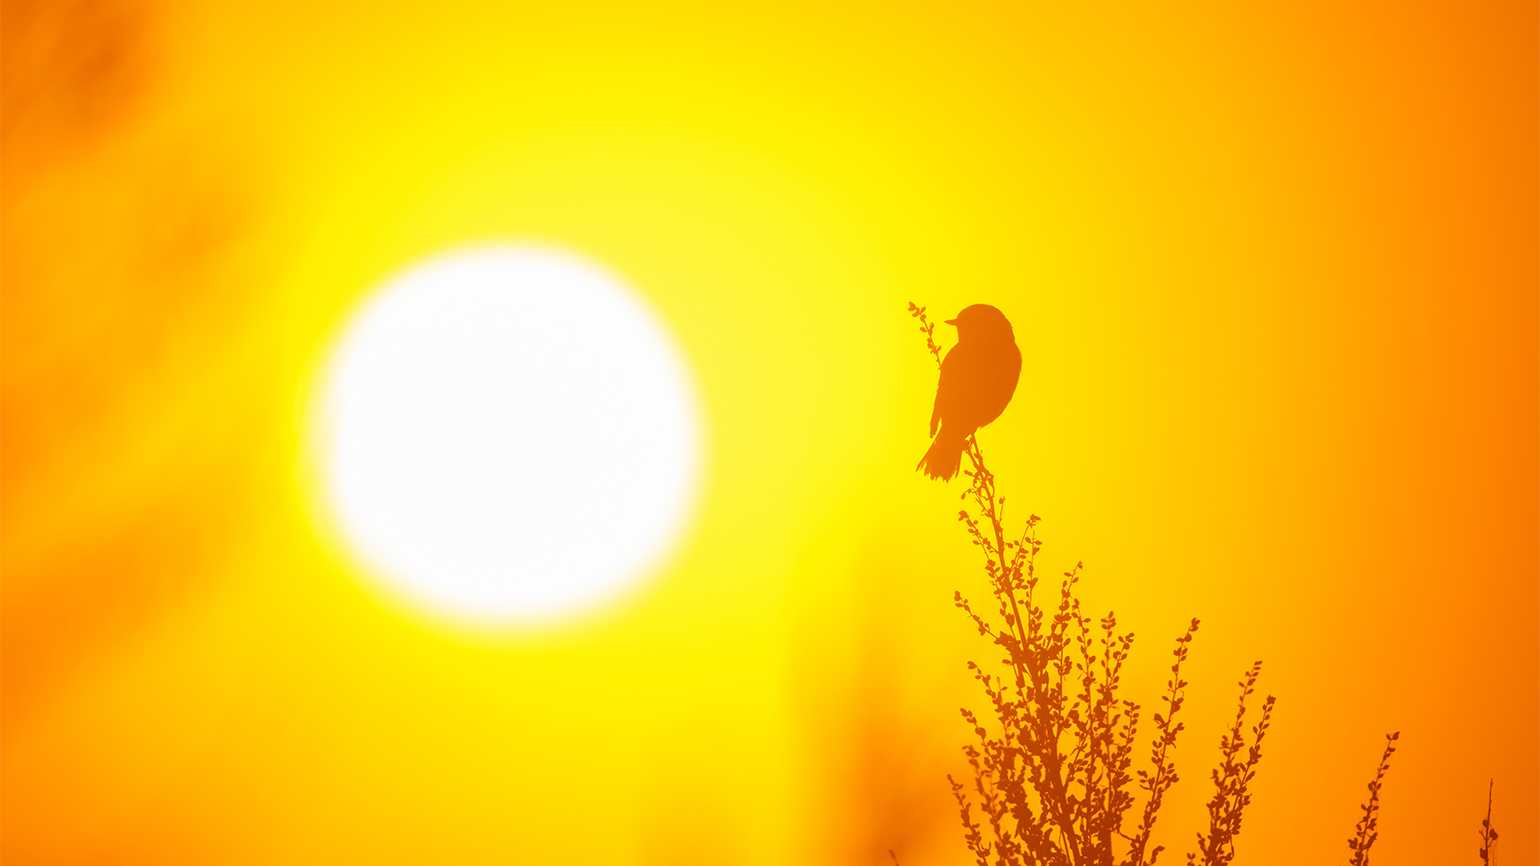 A small bird perches on a branch in the warmth of the sun